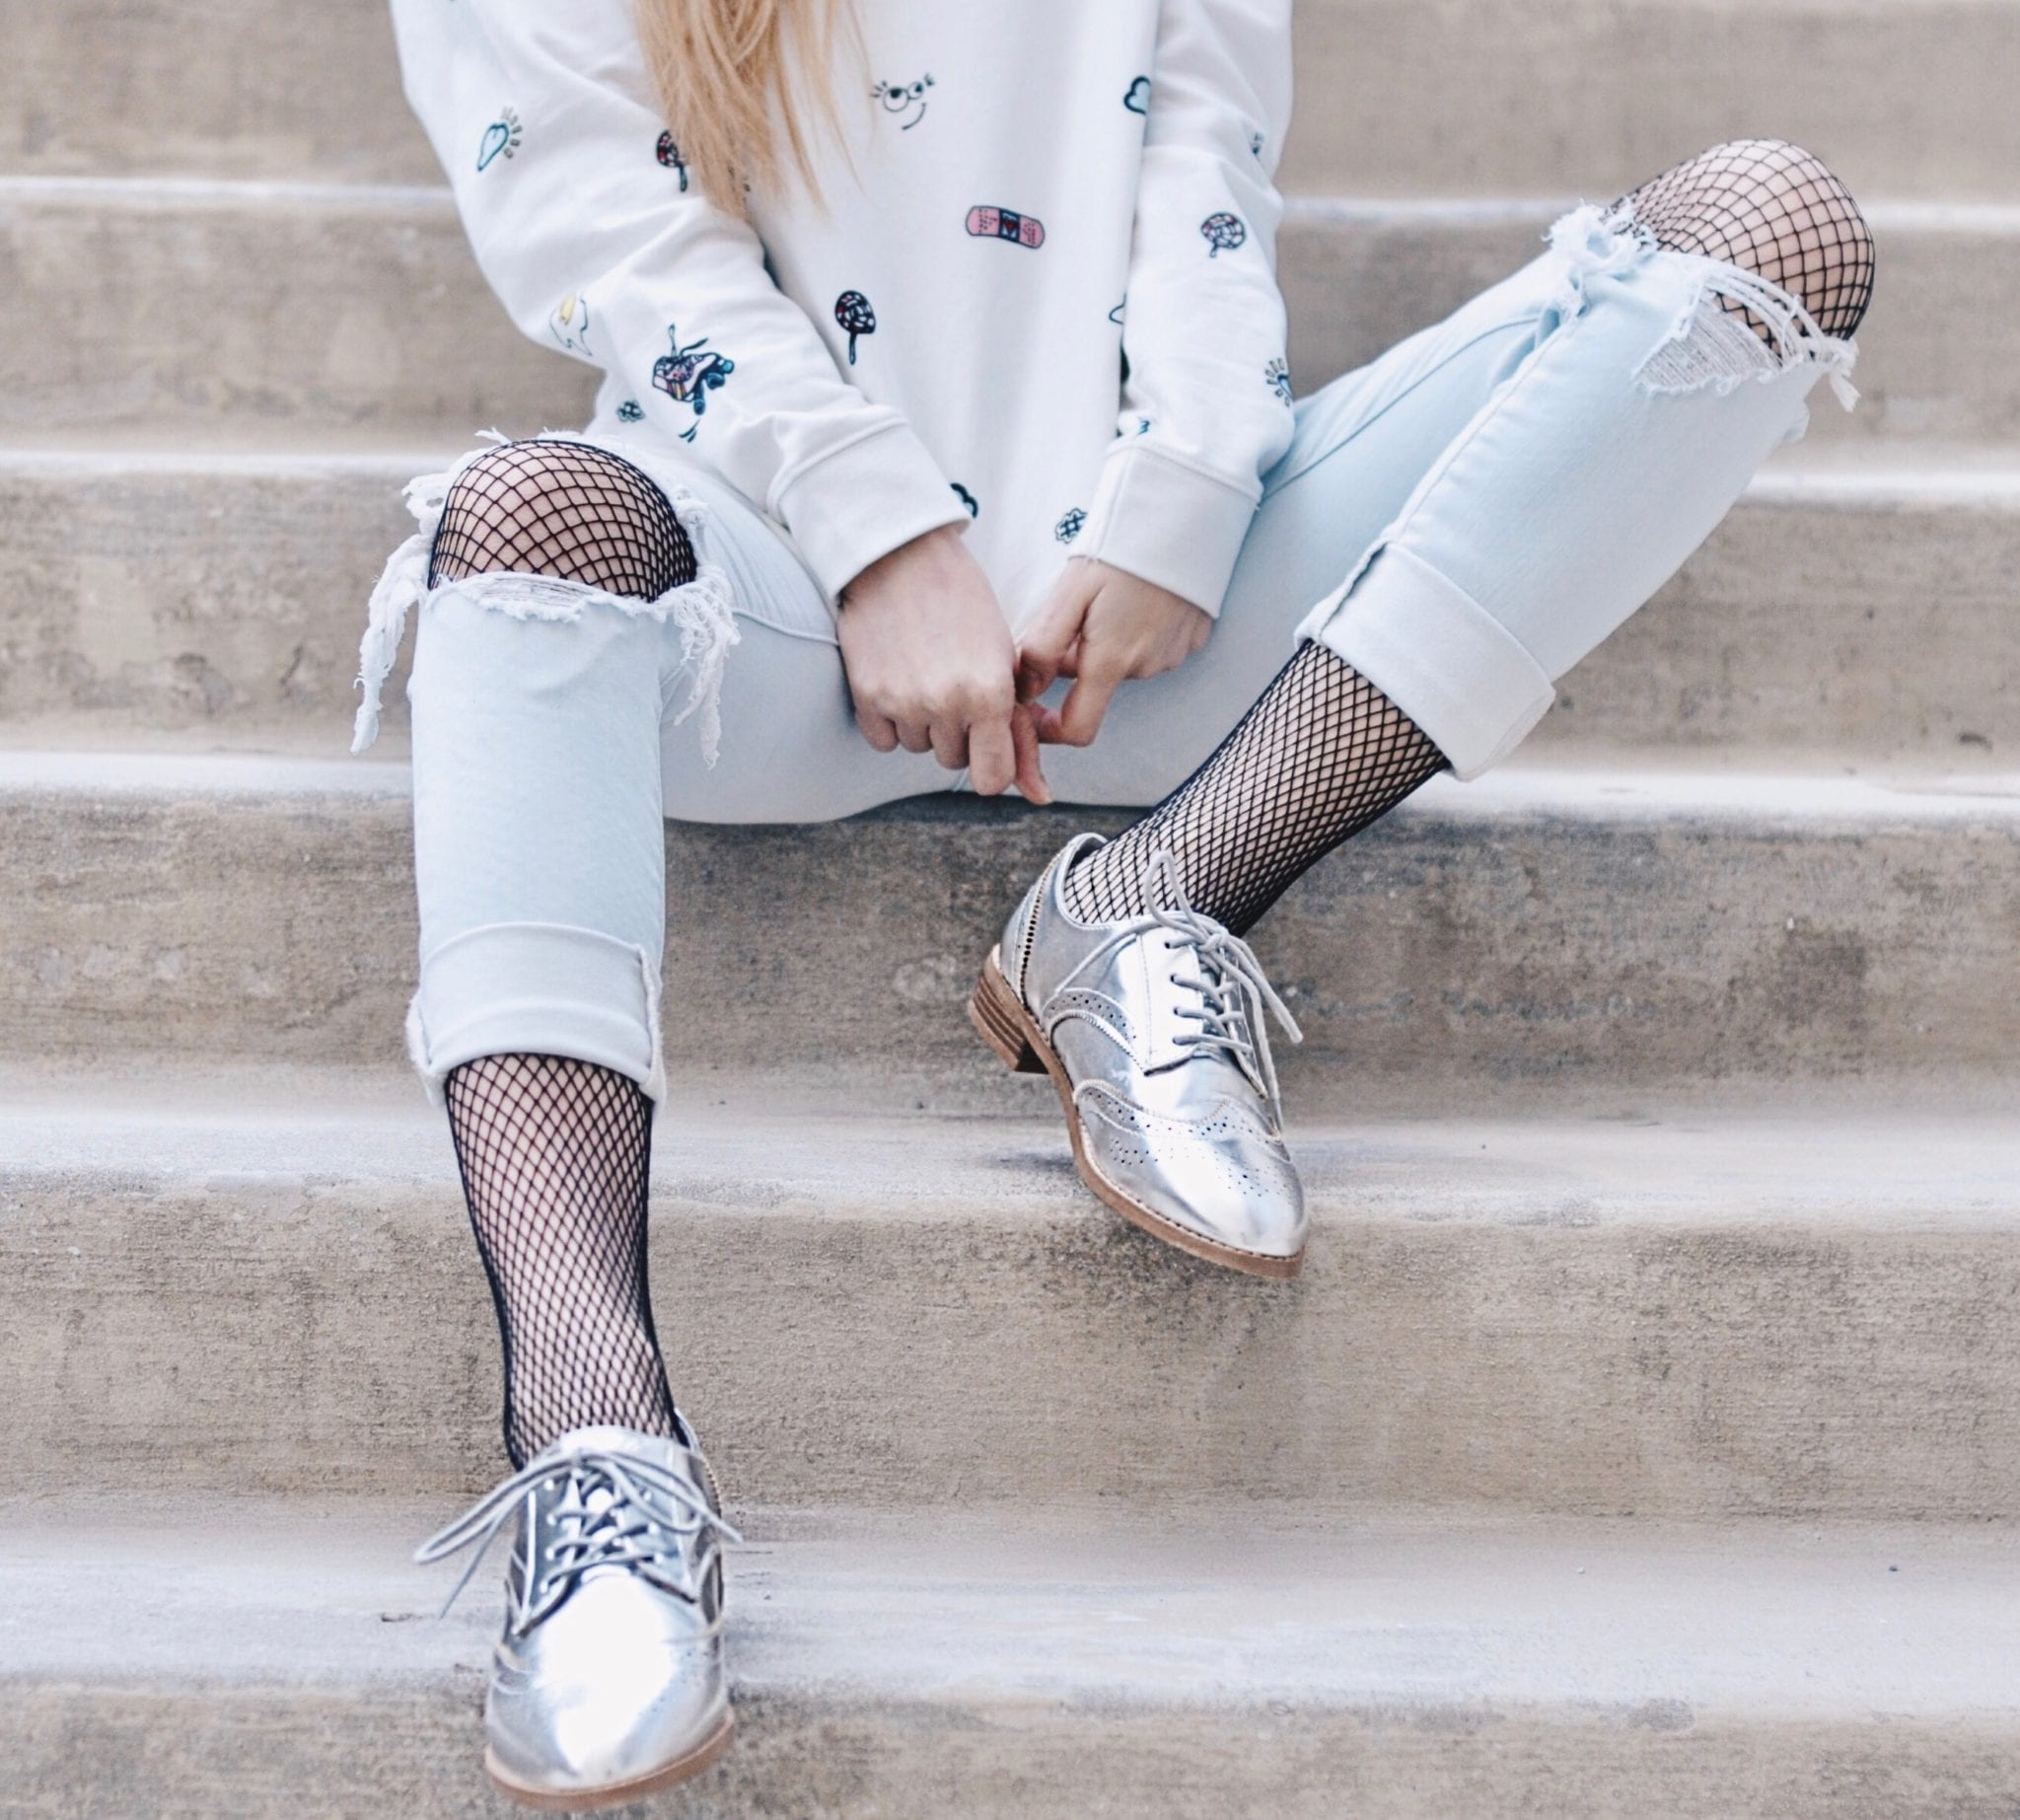 329c370425a2f The first way is to wear the fishnet tights under your distressed jeans and  have them peeked through the holes in your jeans. Don't they just make your  ...